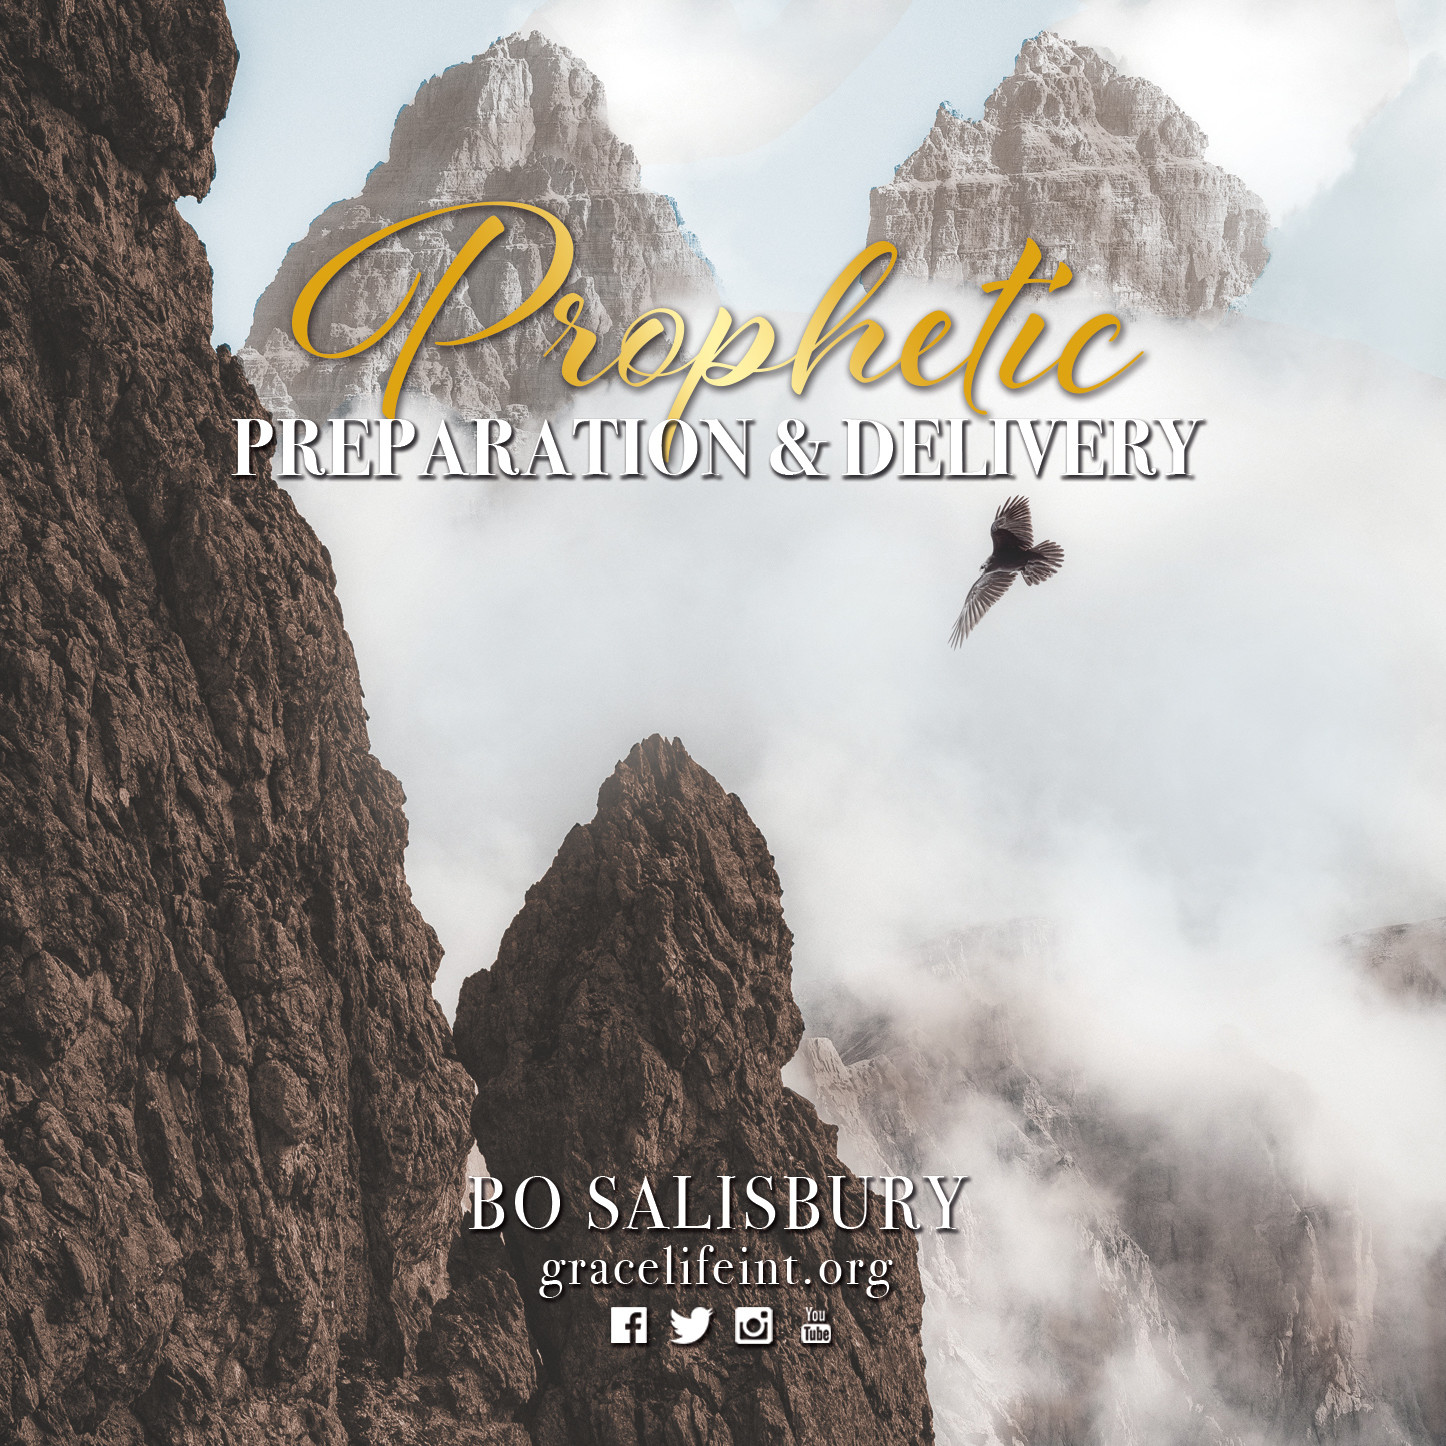 Prophetic Preparation and Delivery